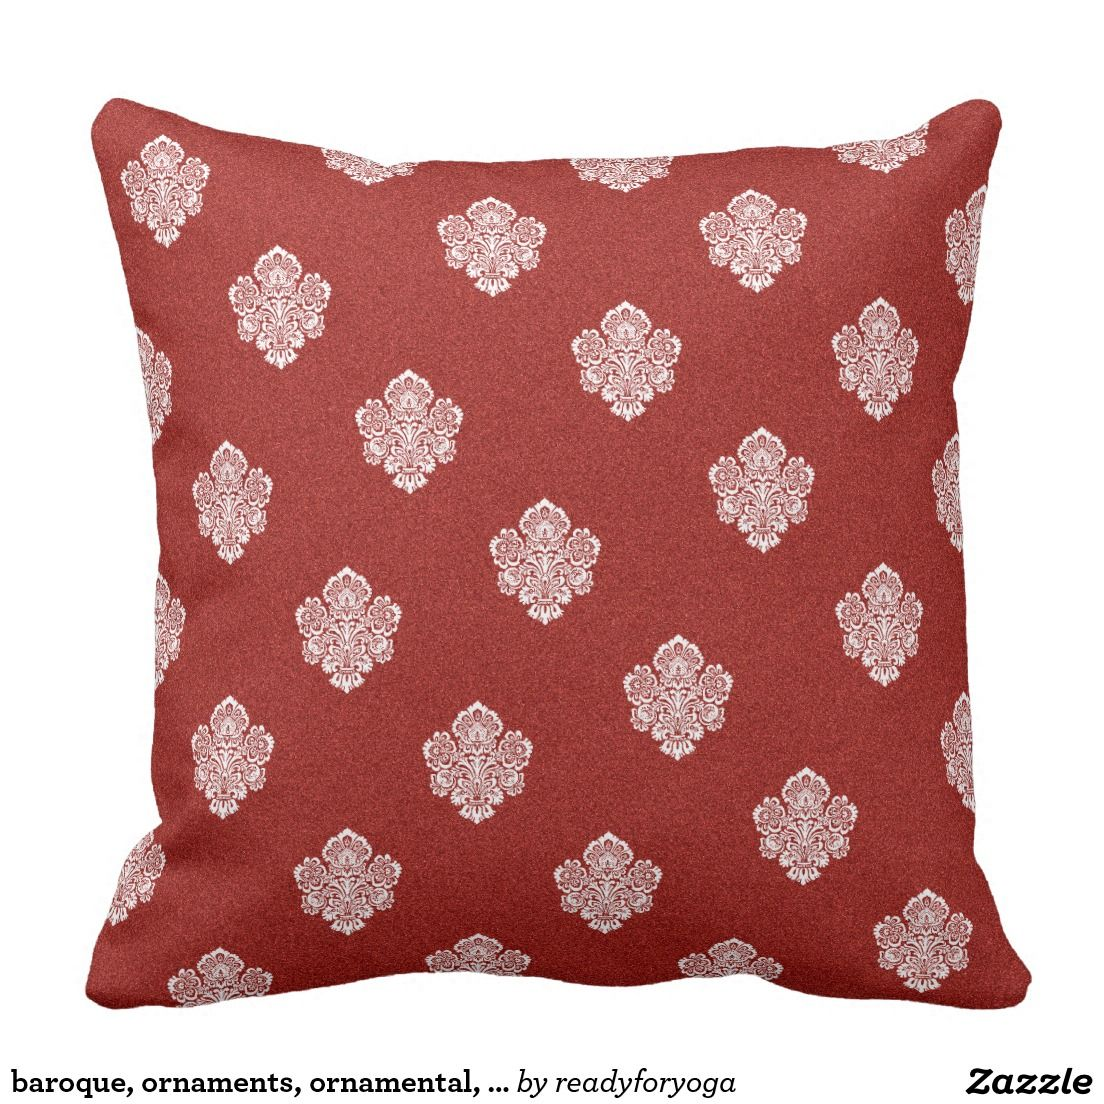 baroque, ornaments, ornamental, red, cherry, white pillow